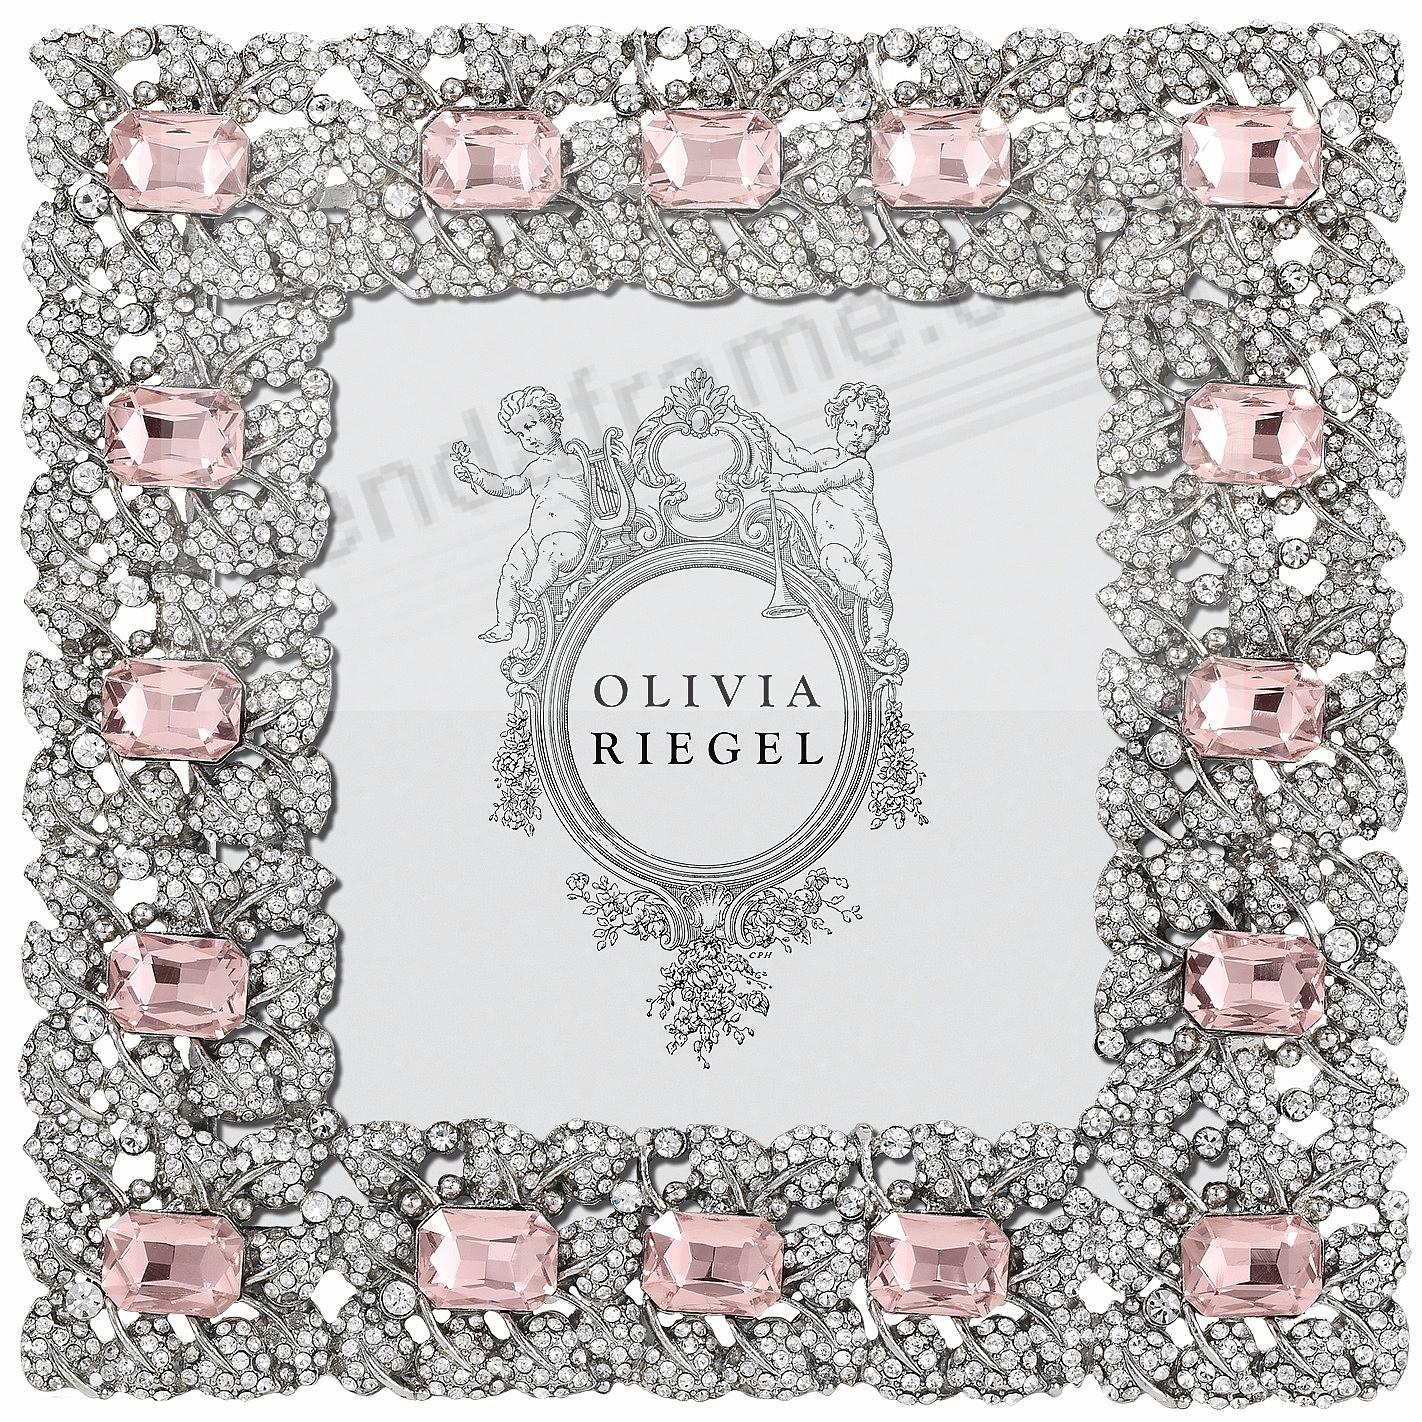 ROSE GENEVIEVE Crystal 4x4 frame by Olivia Riegel®